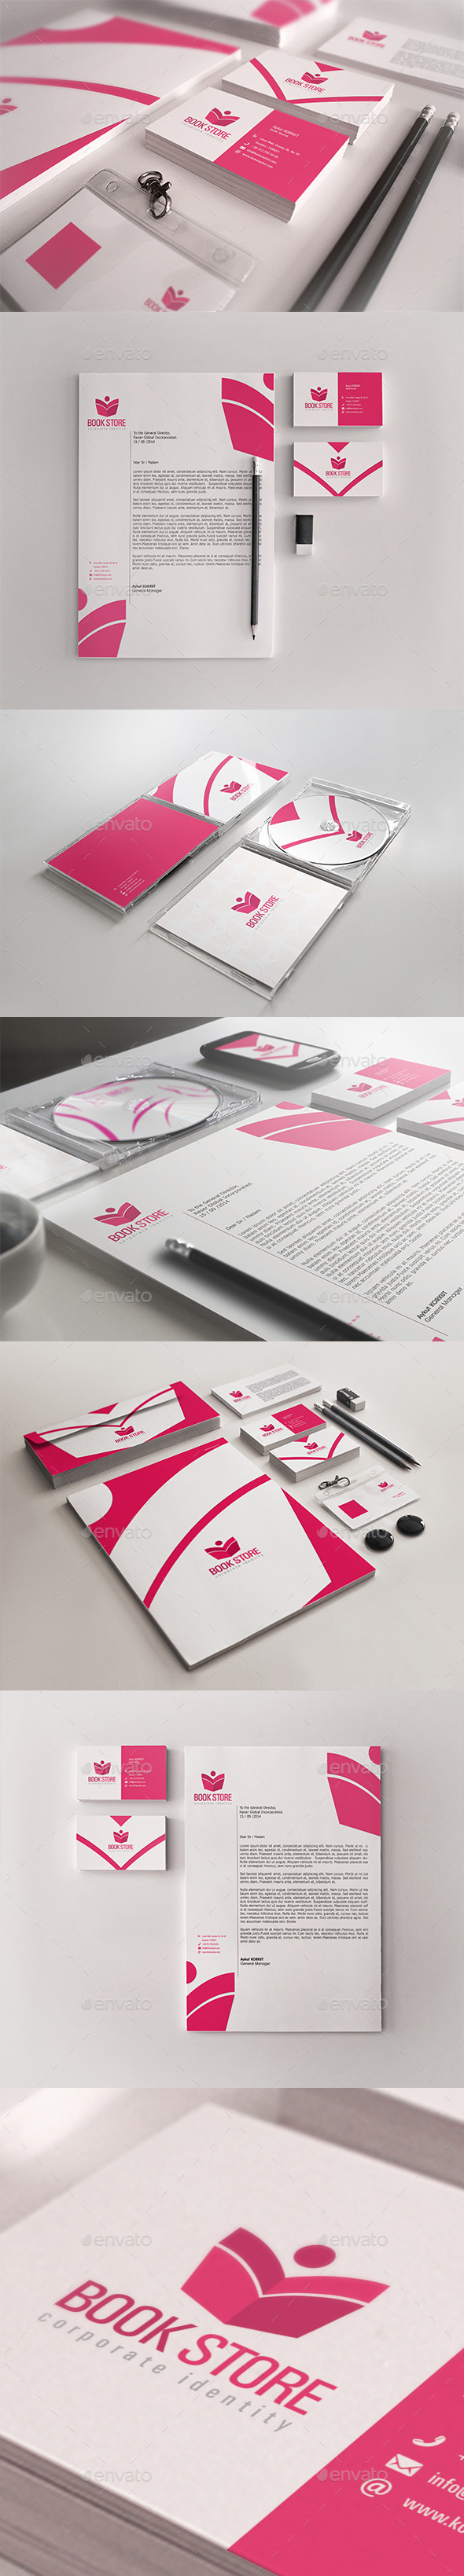 GraphicRiver Book Store Corporate Identity Package 10922412